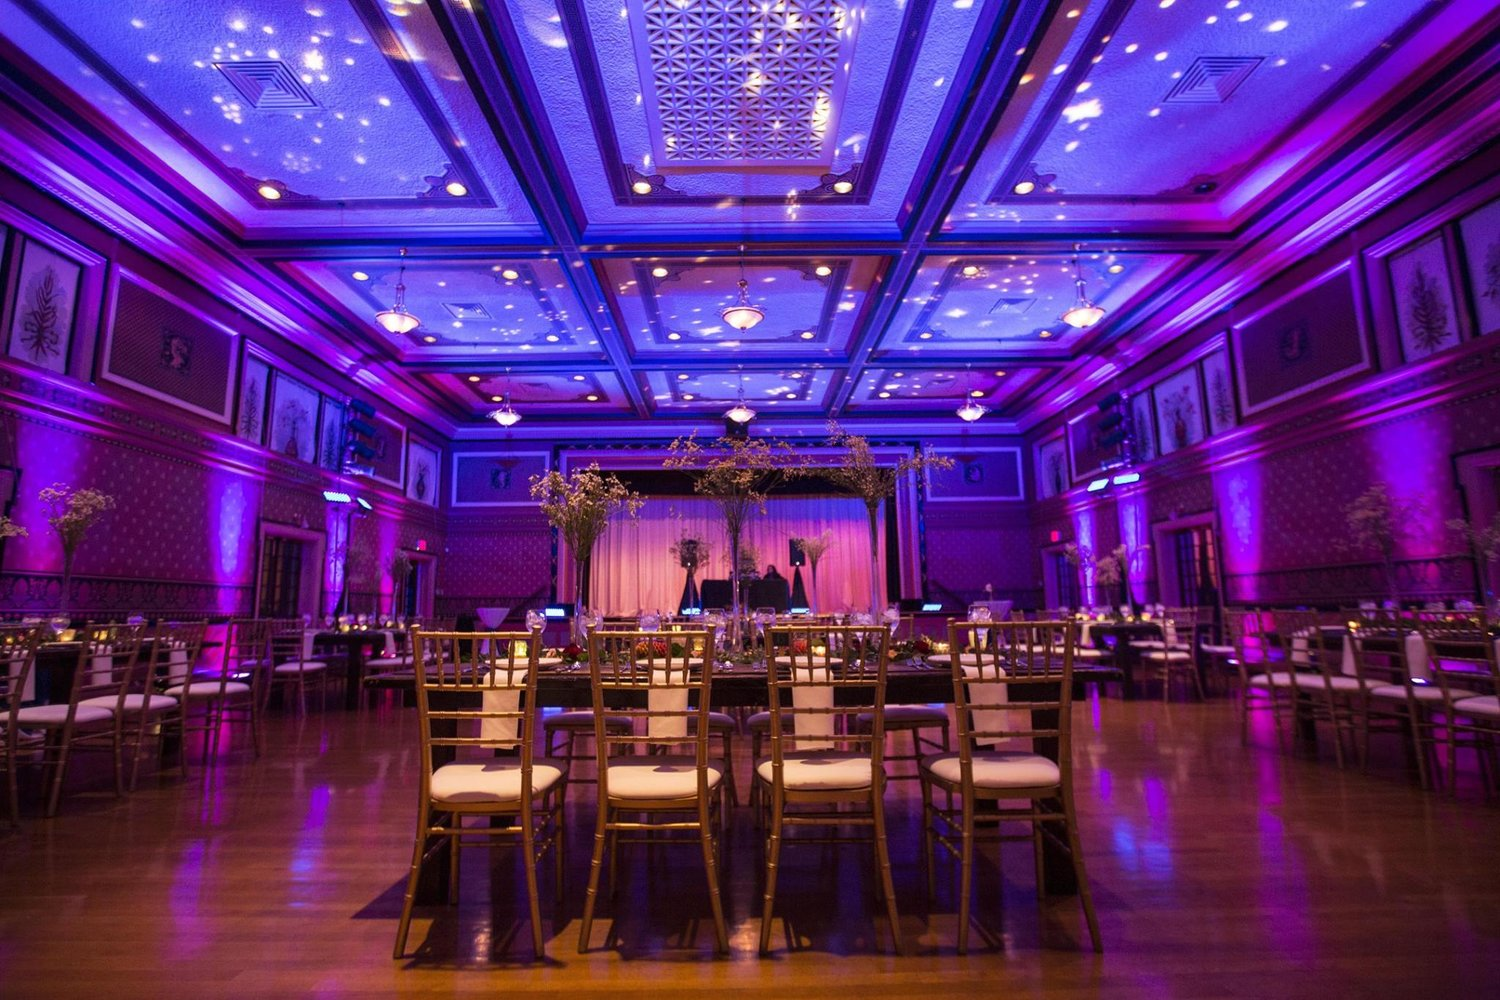 lighting events crimson nimbus ch haze light weddings spectacular and to subtle from print event